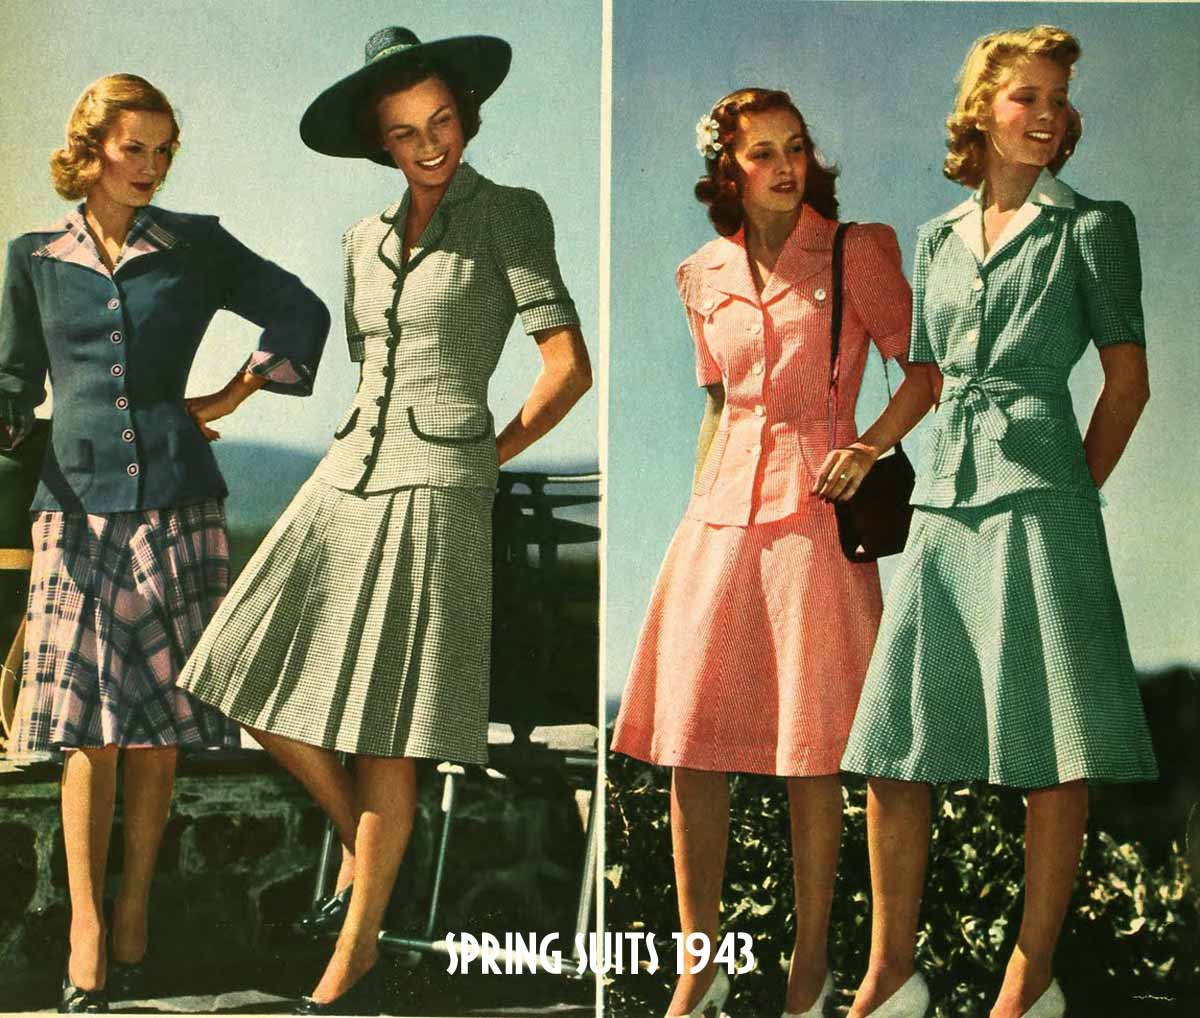 1940s Fashion   Spring College Suits for 1943   Glamour Daze 1940s Fashion   Spring College Suits for 1943